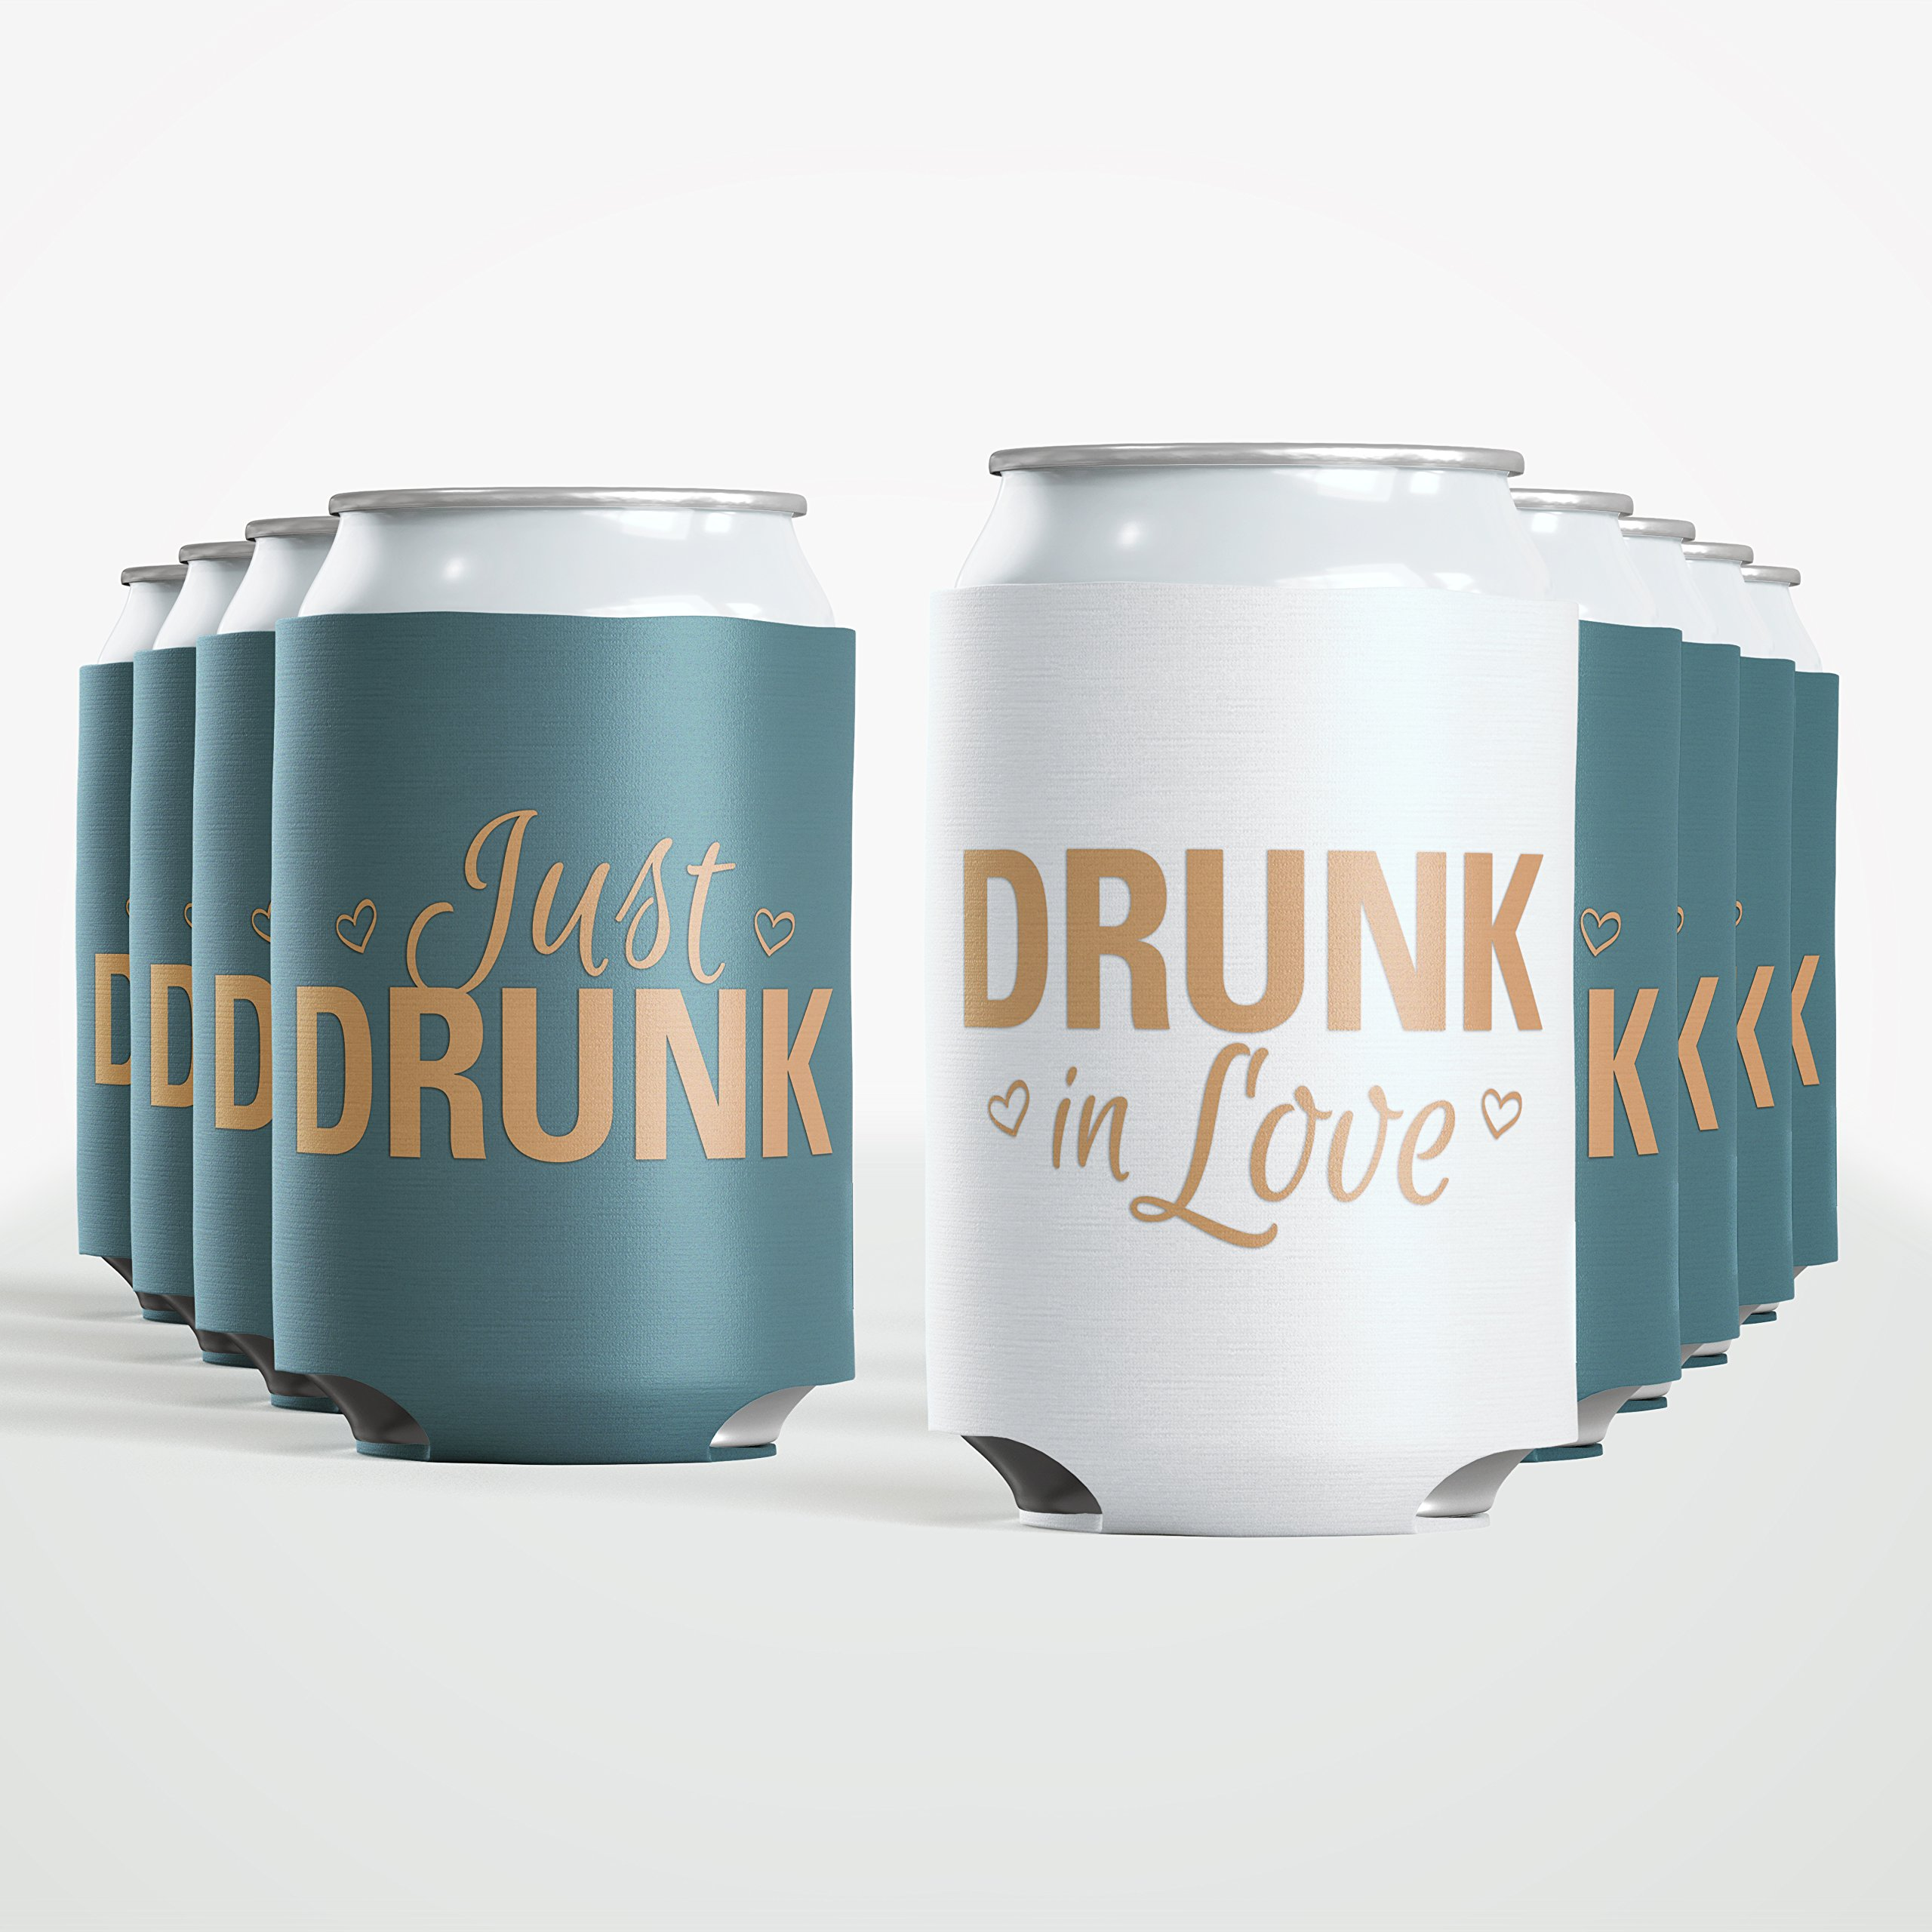 9pc Set Bride Drunk in Love & Just Drunk Favor Drink Wedding Coozies Bachelorette Party Bridal Showers & Weddings - 4mm Bottle Cooler Sleeves aka Can Coozie Full Set aka Beverage Insulators (9pc Set)